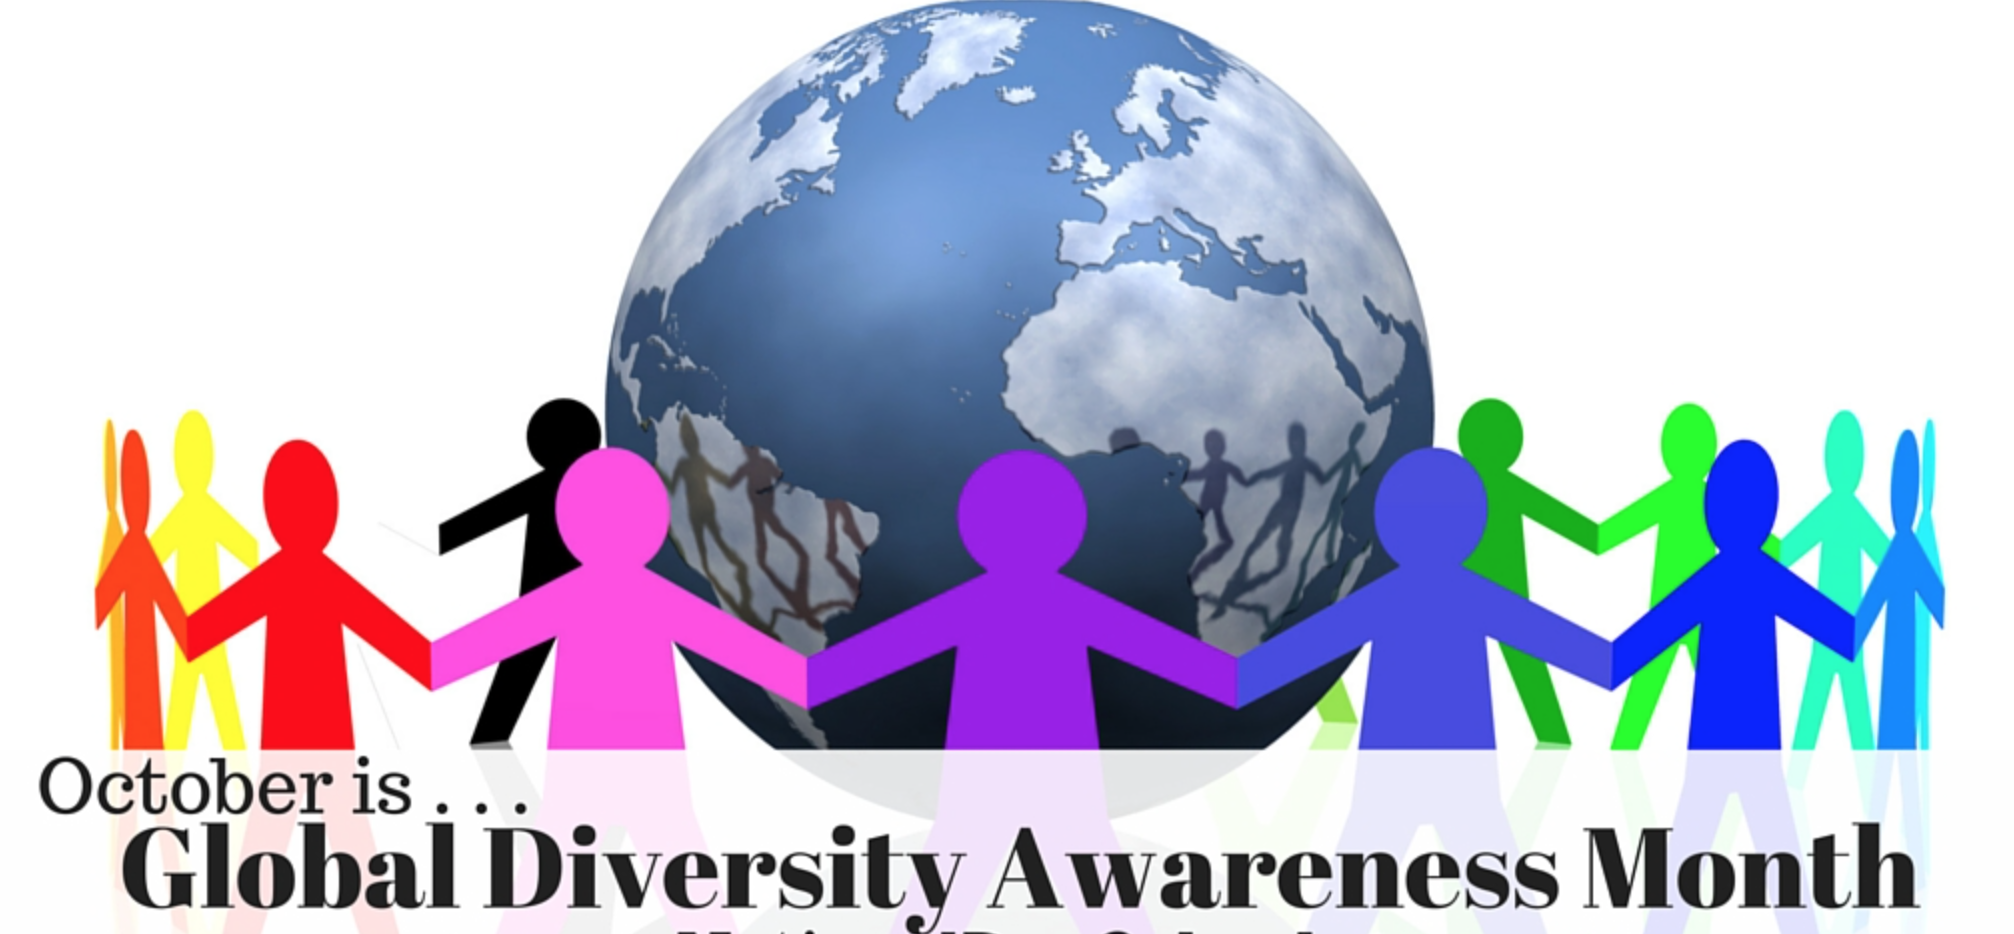 Diversity Awareness Month